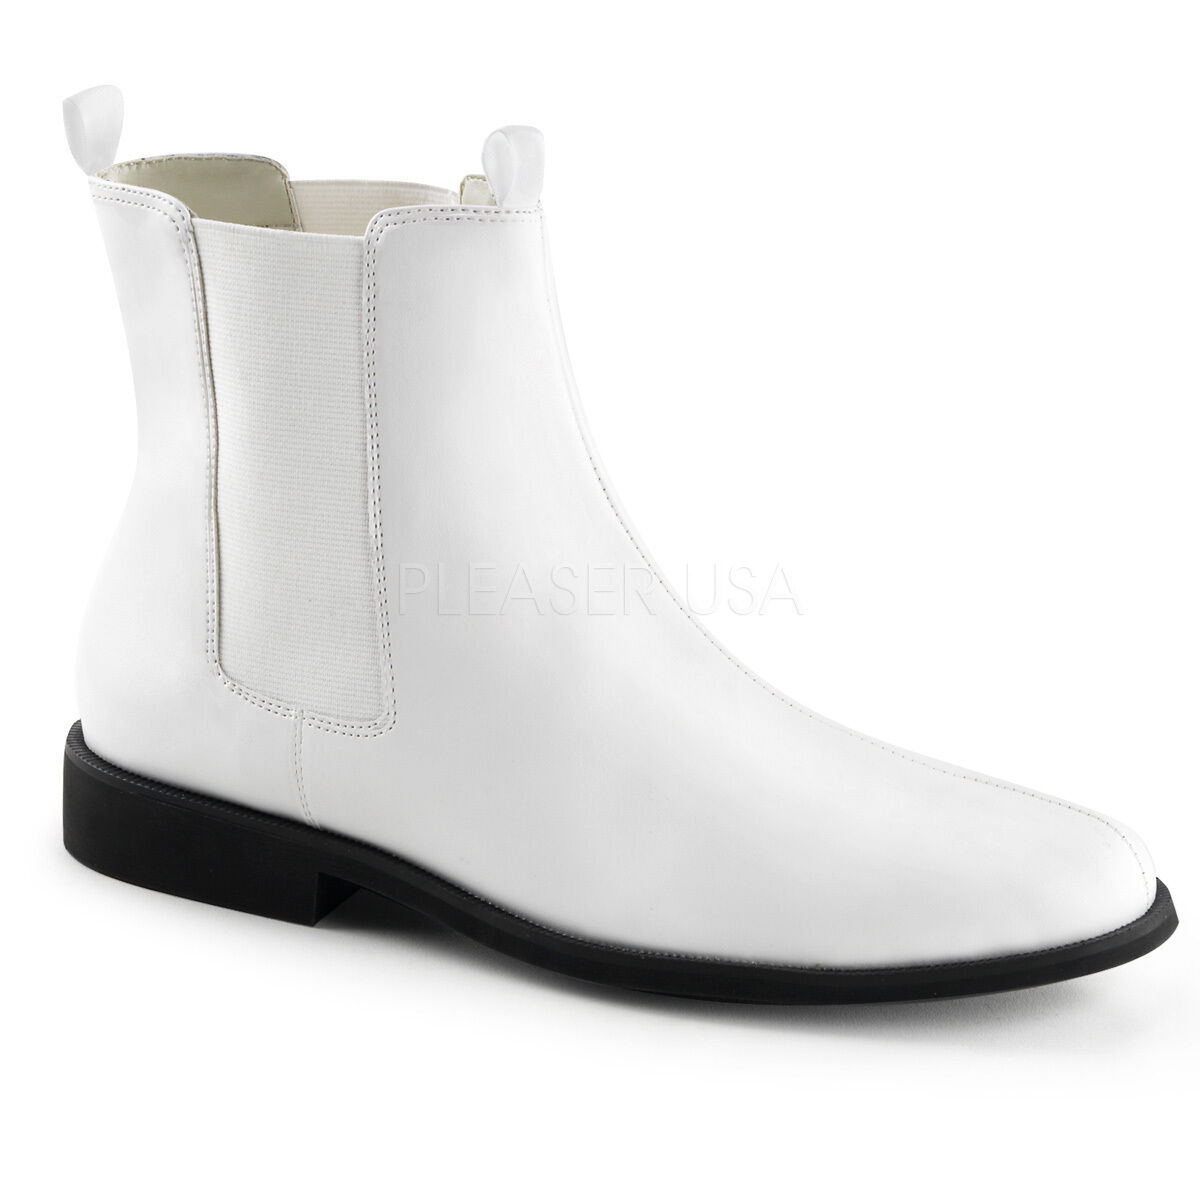 Funtasma Matte White 1  Ankle Storm Trooper Boots Costume Cosplay Mens 8-14